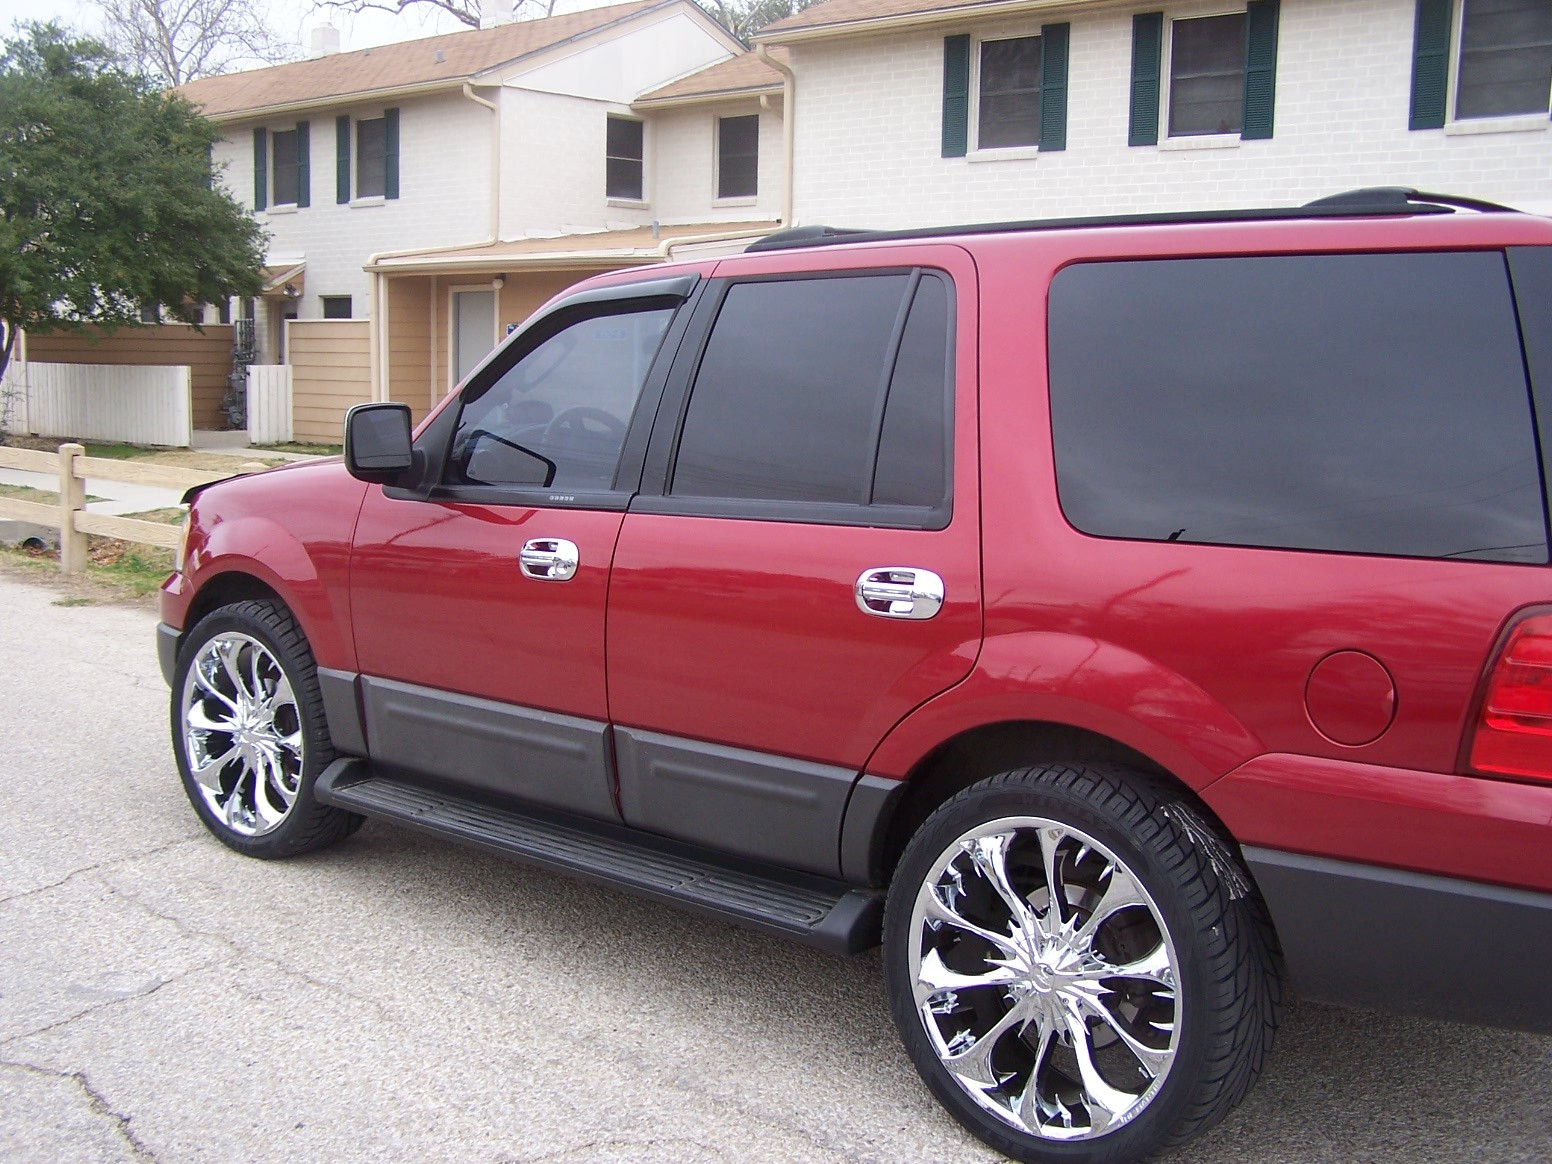 cedric12 2005 ford expedition specs photos modification. Black Bedroom Furniture Sets. Home Design Ideas